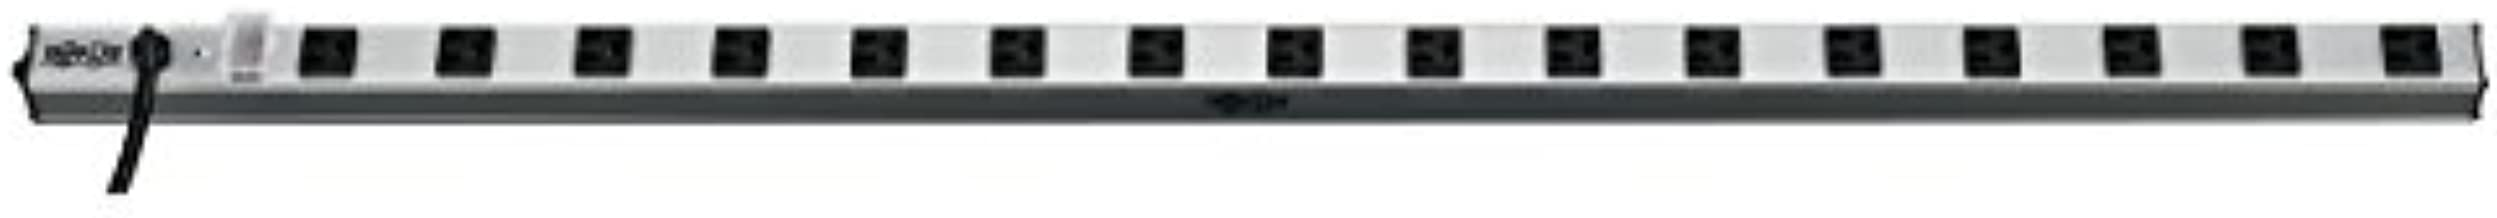 Tripp Lite 16 Outlet Bench & Cabinet Power Strip, 48 in. Length, 15ft Cord with 5-15P Plug, (PS4816) Black